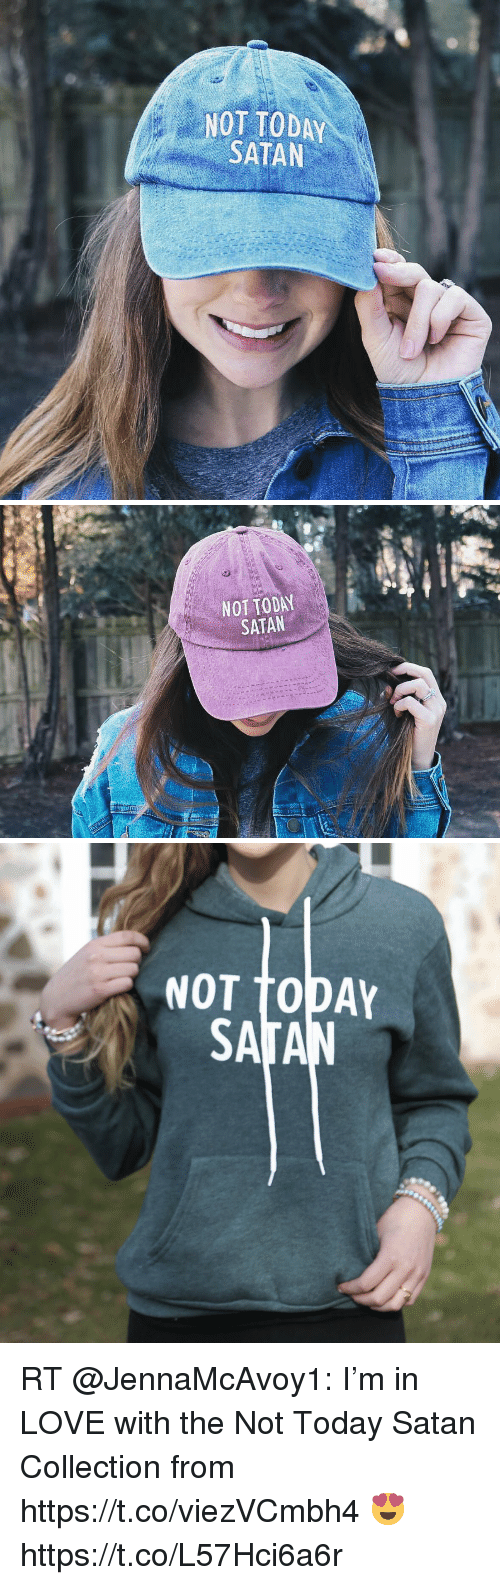 Love, Memes, and Today: NOT TODAY  SATAN   NOT TODAY  SATAN   NOT TODAY RT @JennaMcAvoy1: I'm in LOVE with the Not Today Satan Collection from https://t.co/viezVCmbh4 😍 https://t.co/L57Hci6a6r